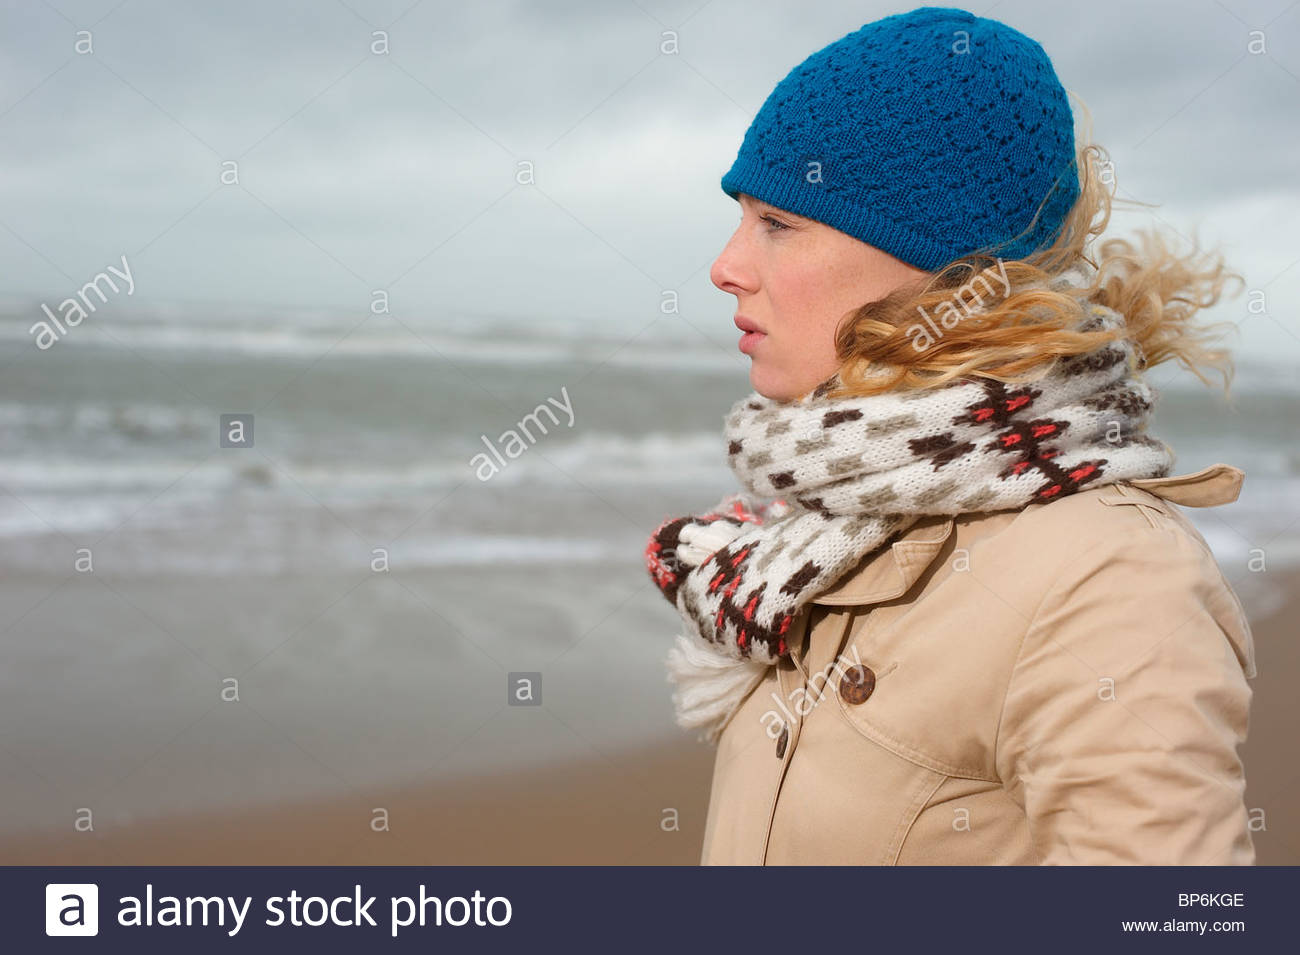 A woman looking out to sea on a winters day - Stock Image